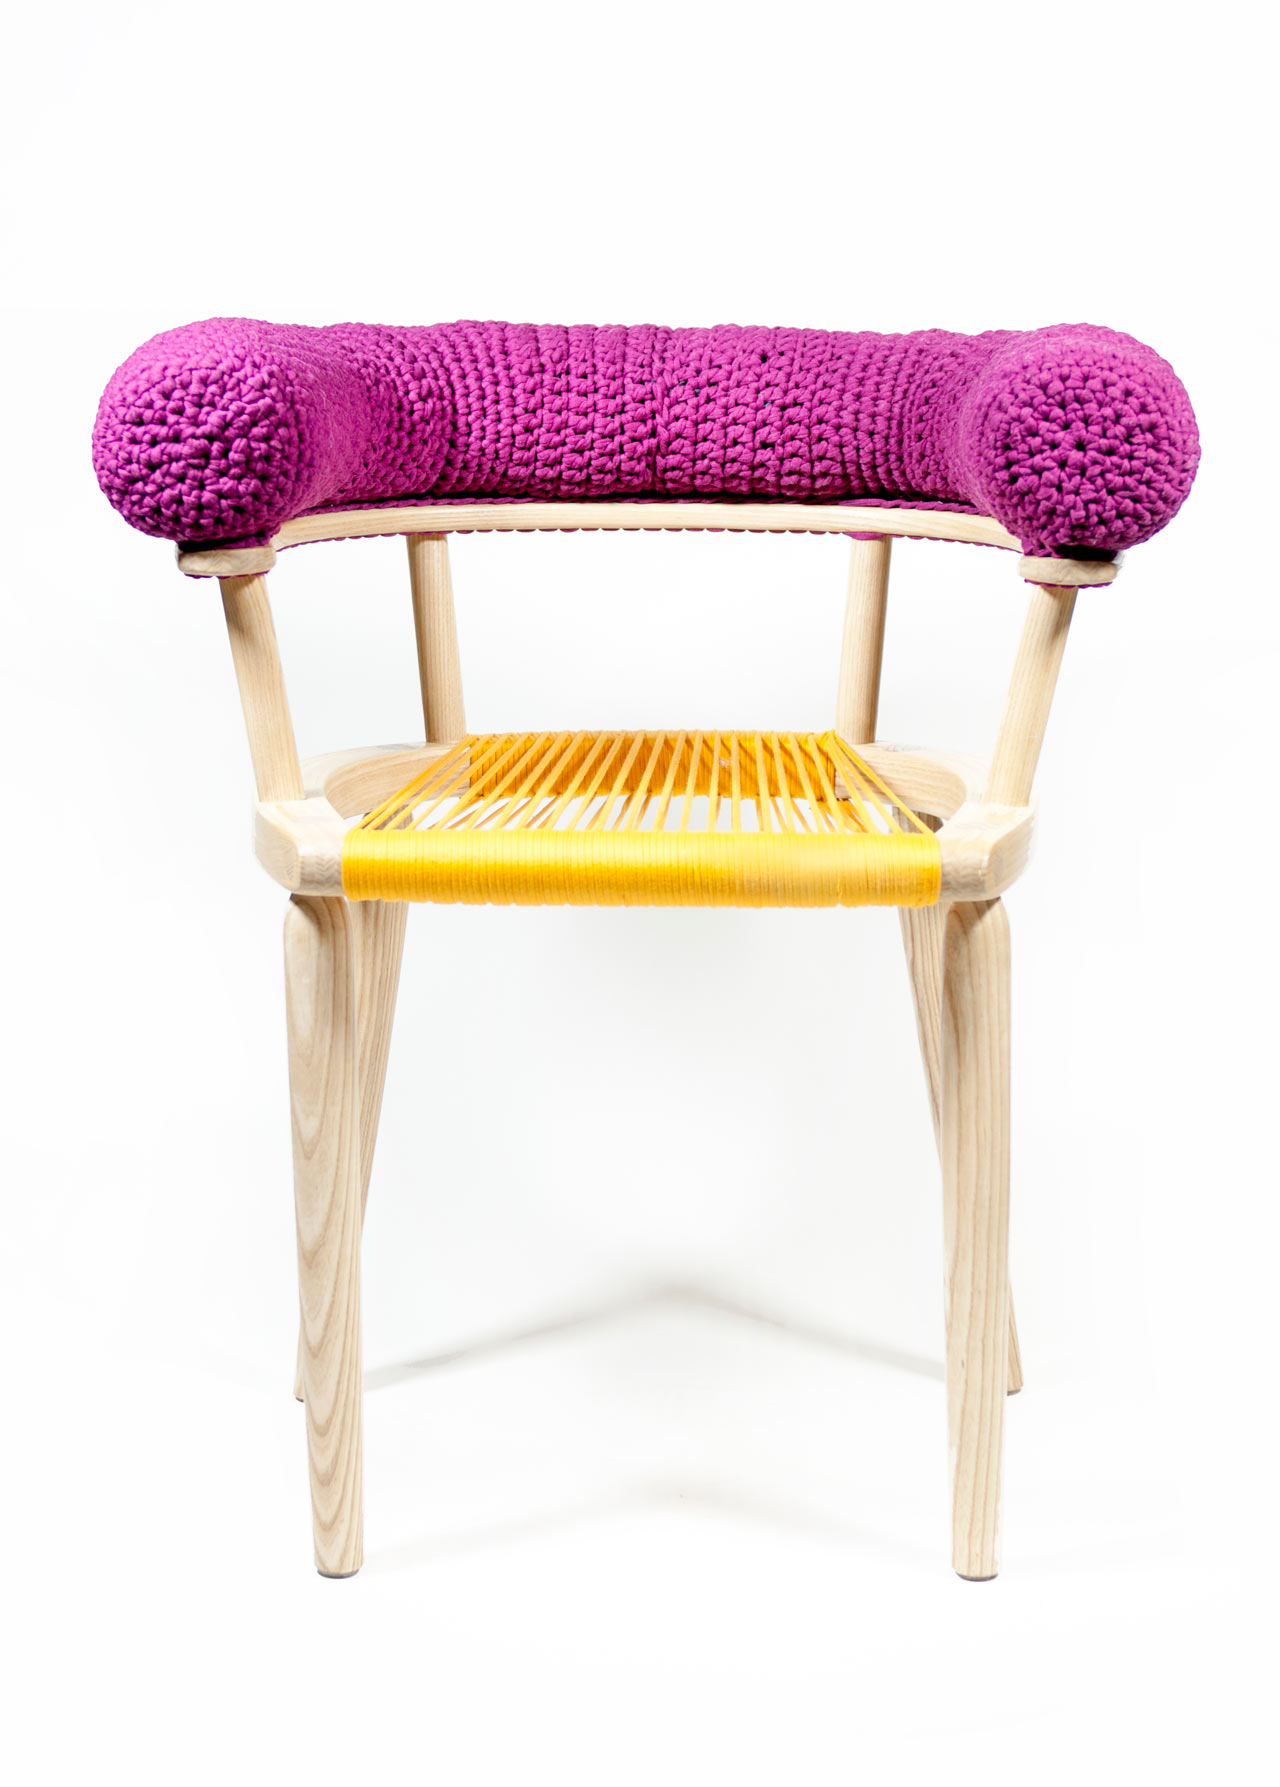 A Playful Collection of Furniture and Accessories